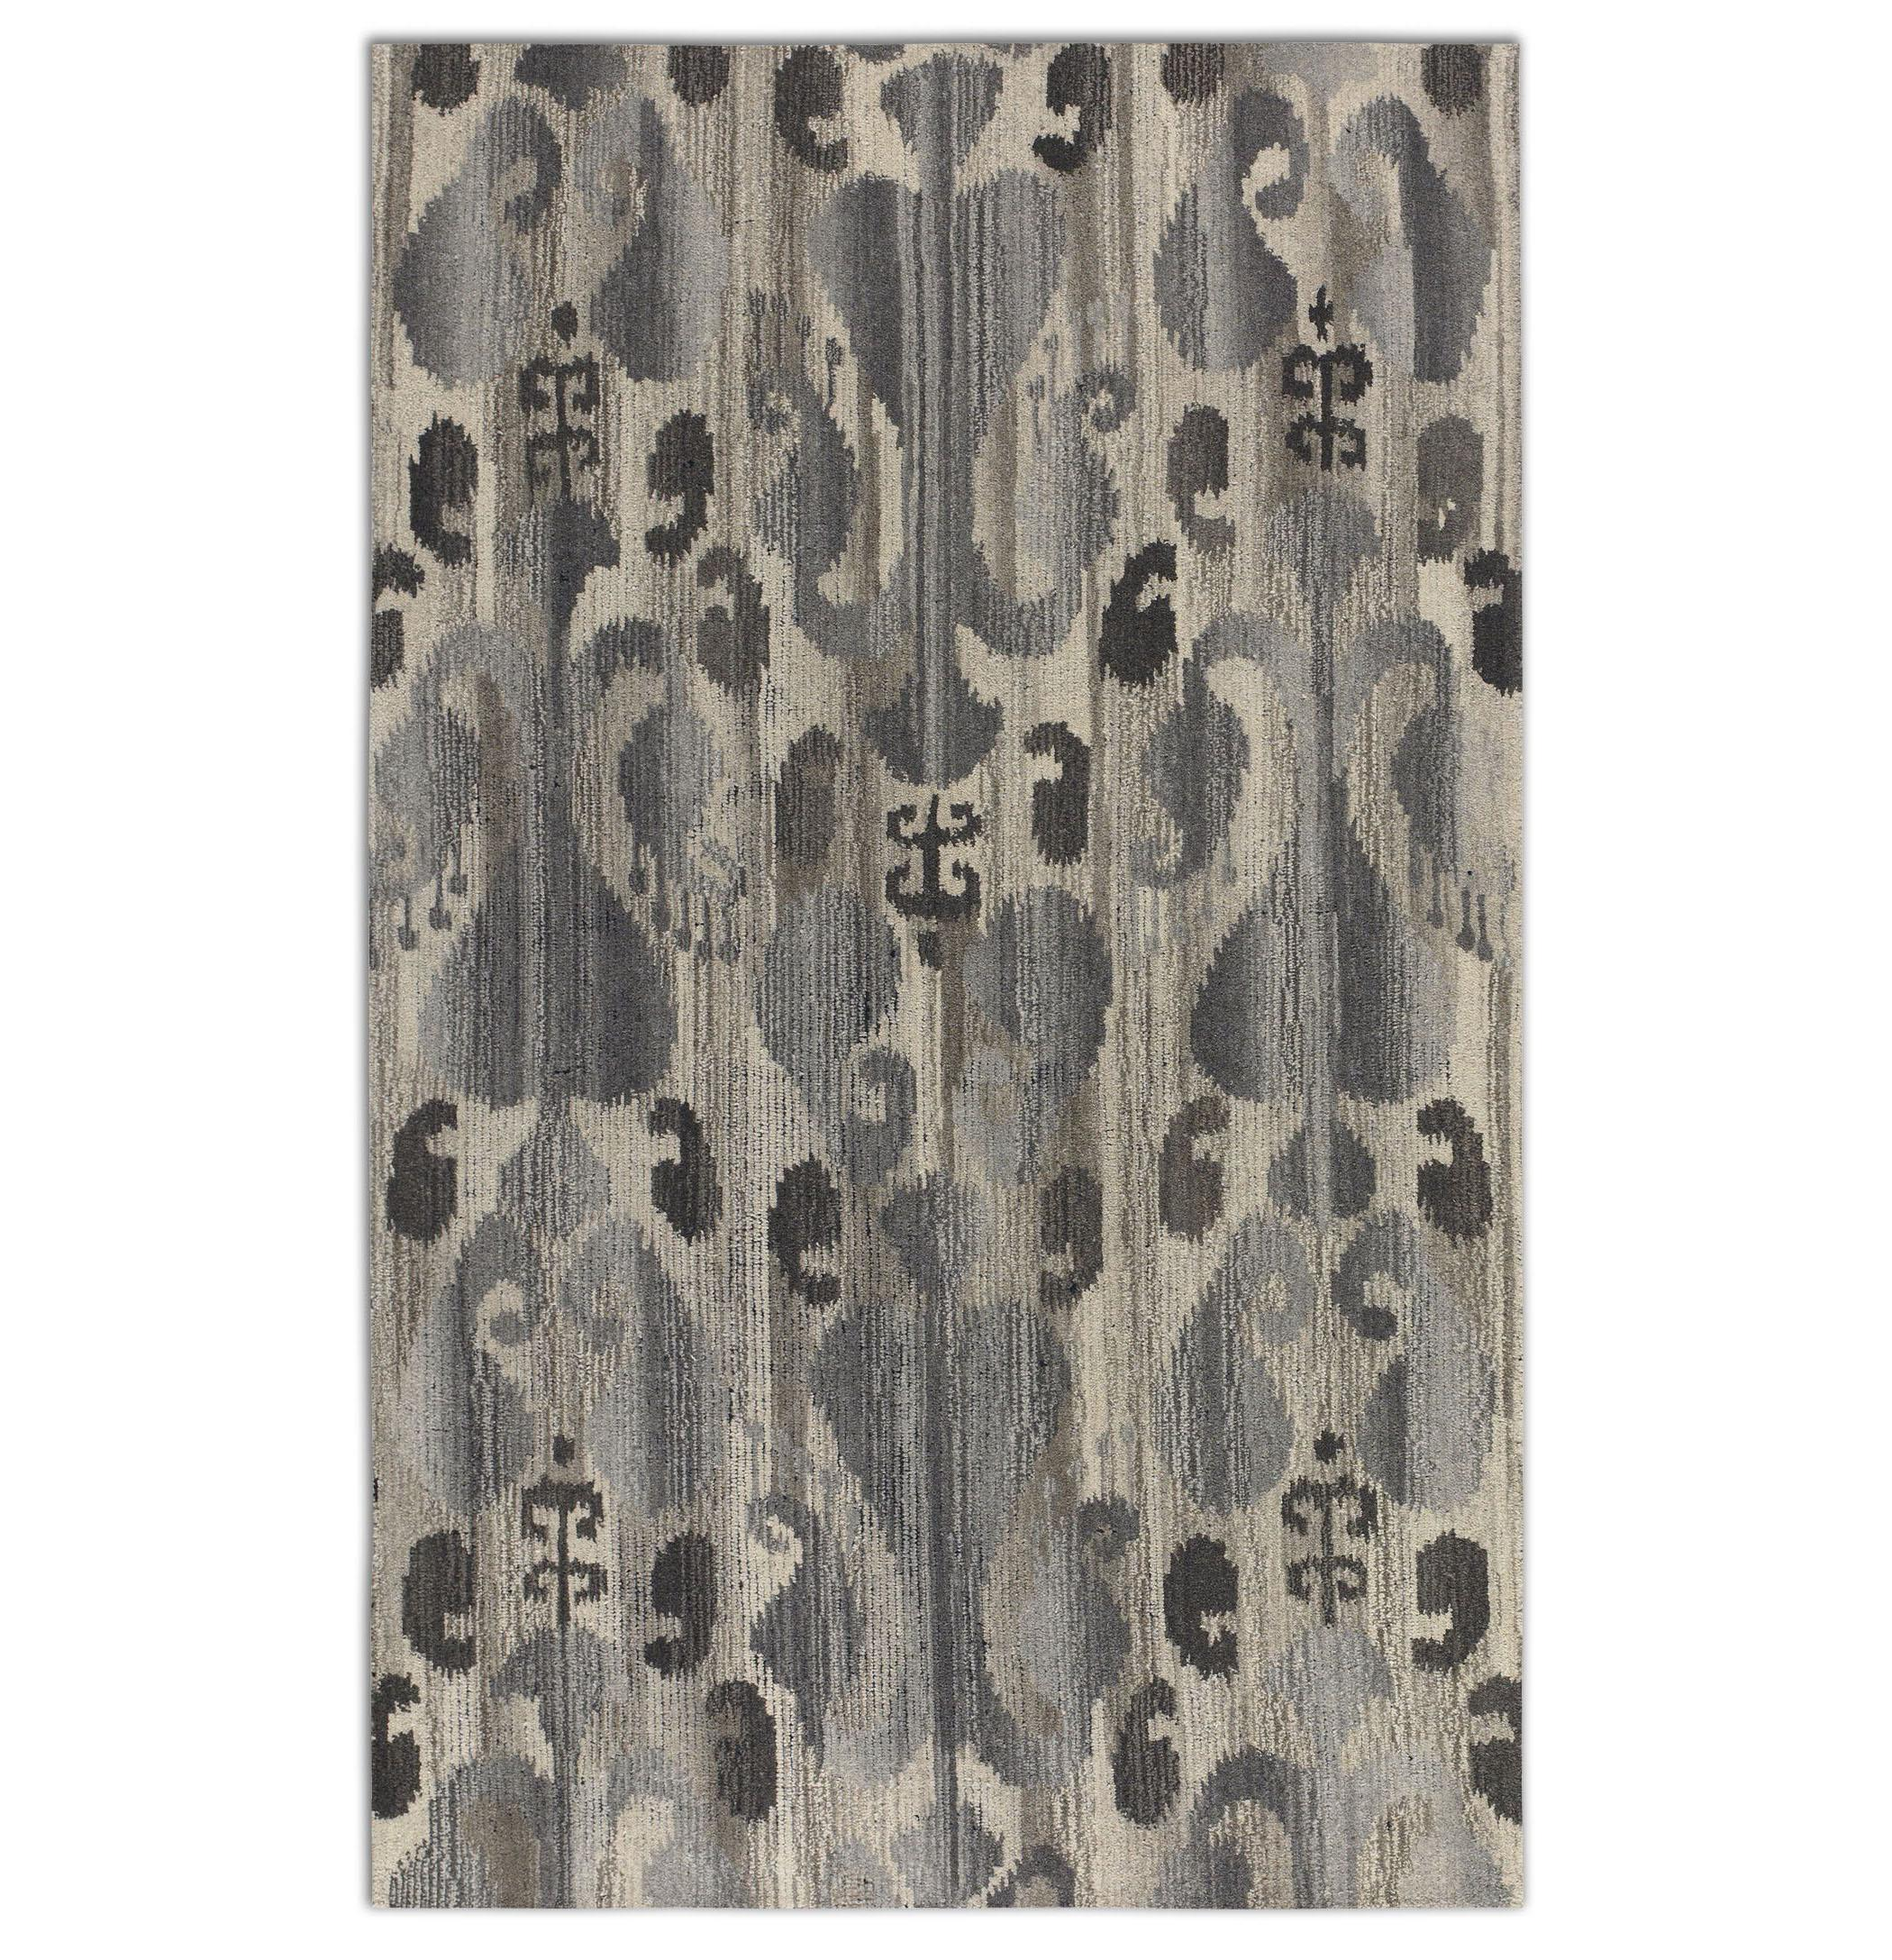 Uttermost Rugs Sepino 5 X 8 Rug - Gray - Item Number: 73048-5